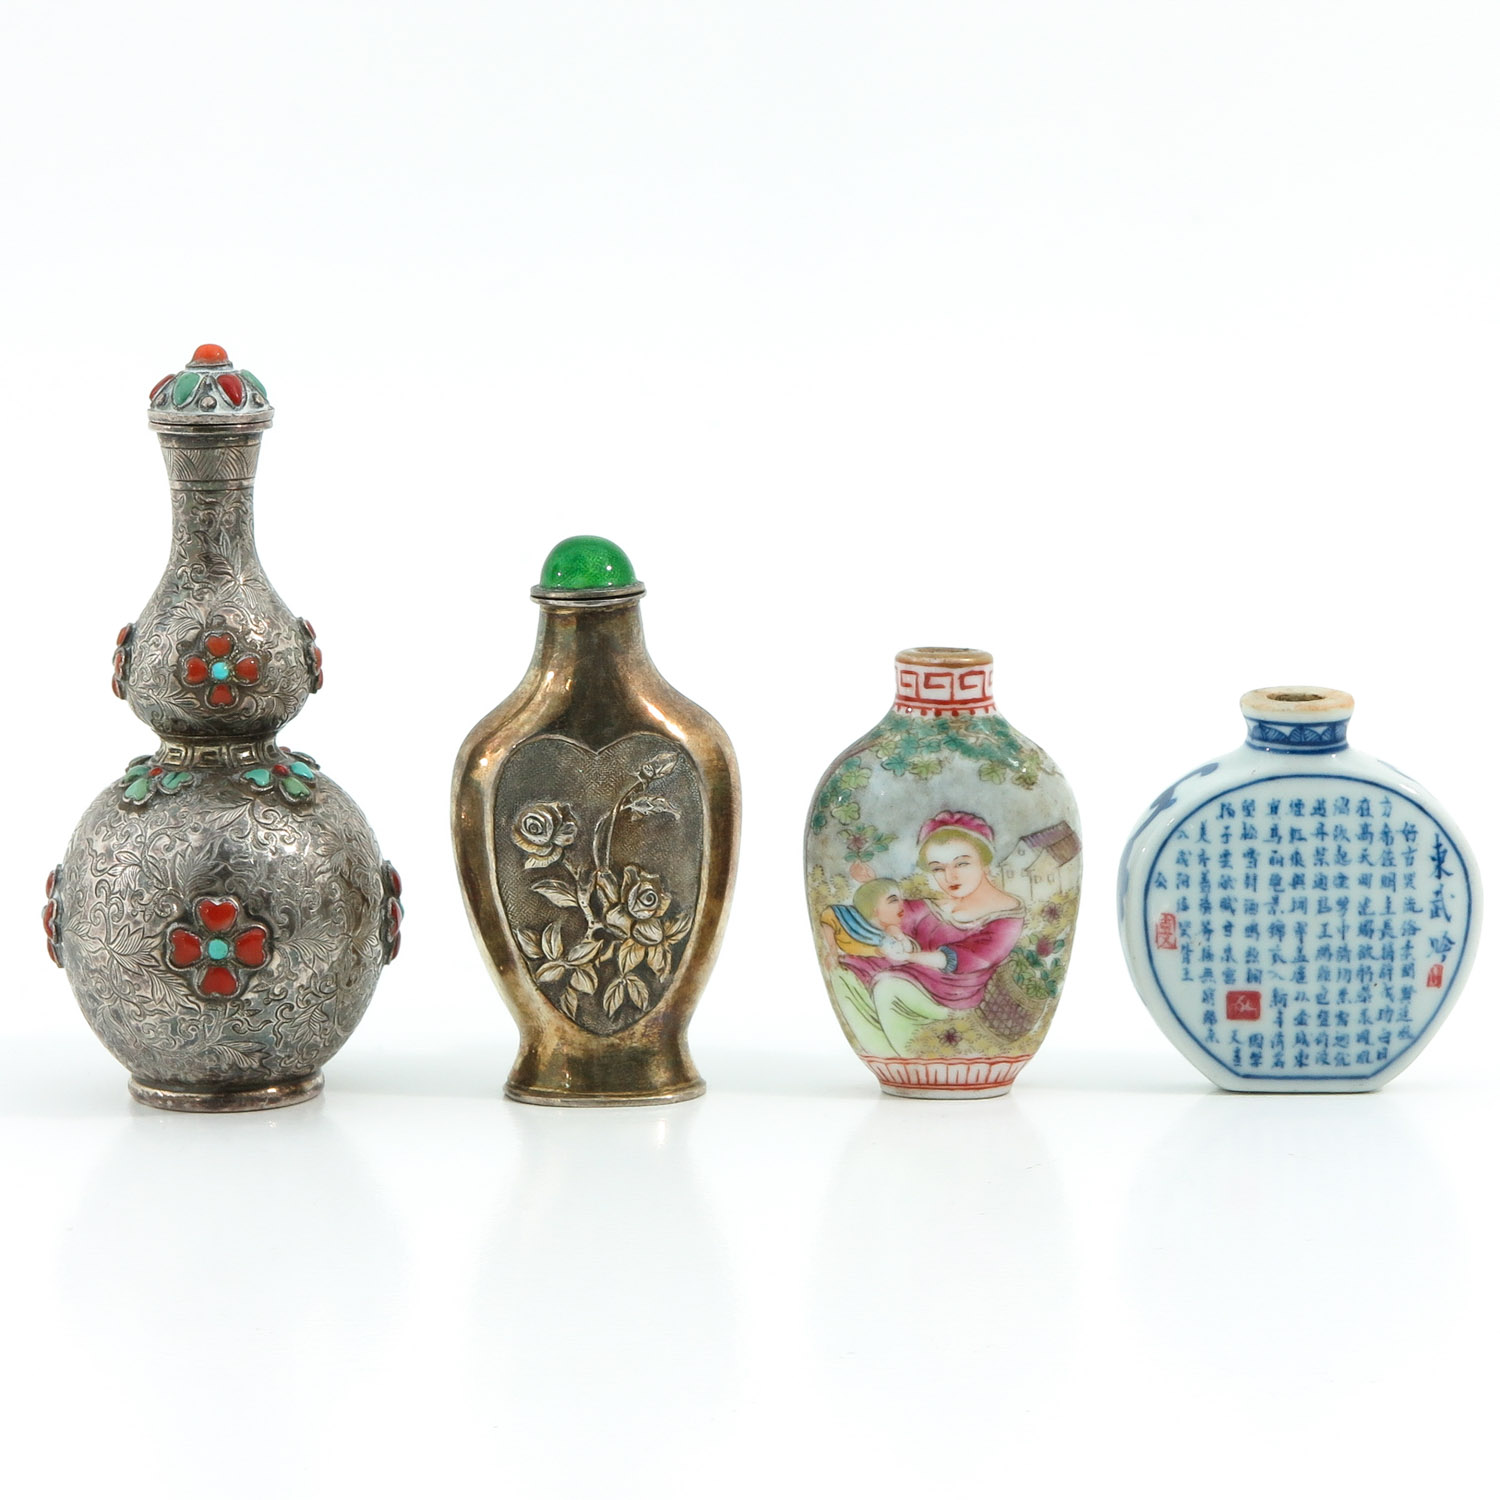 A Diverse Collection of 4 Snuff Bottles